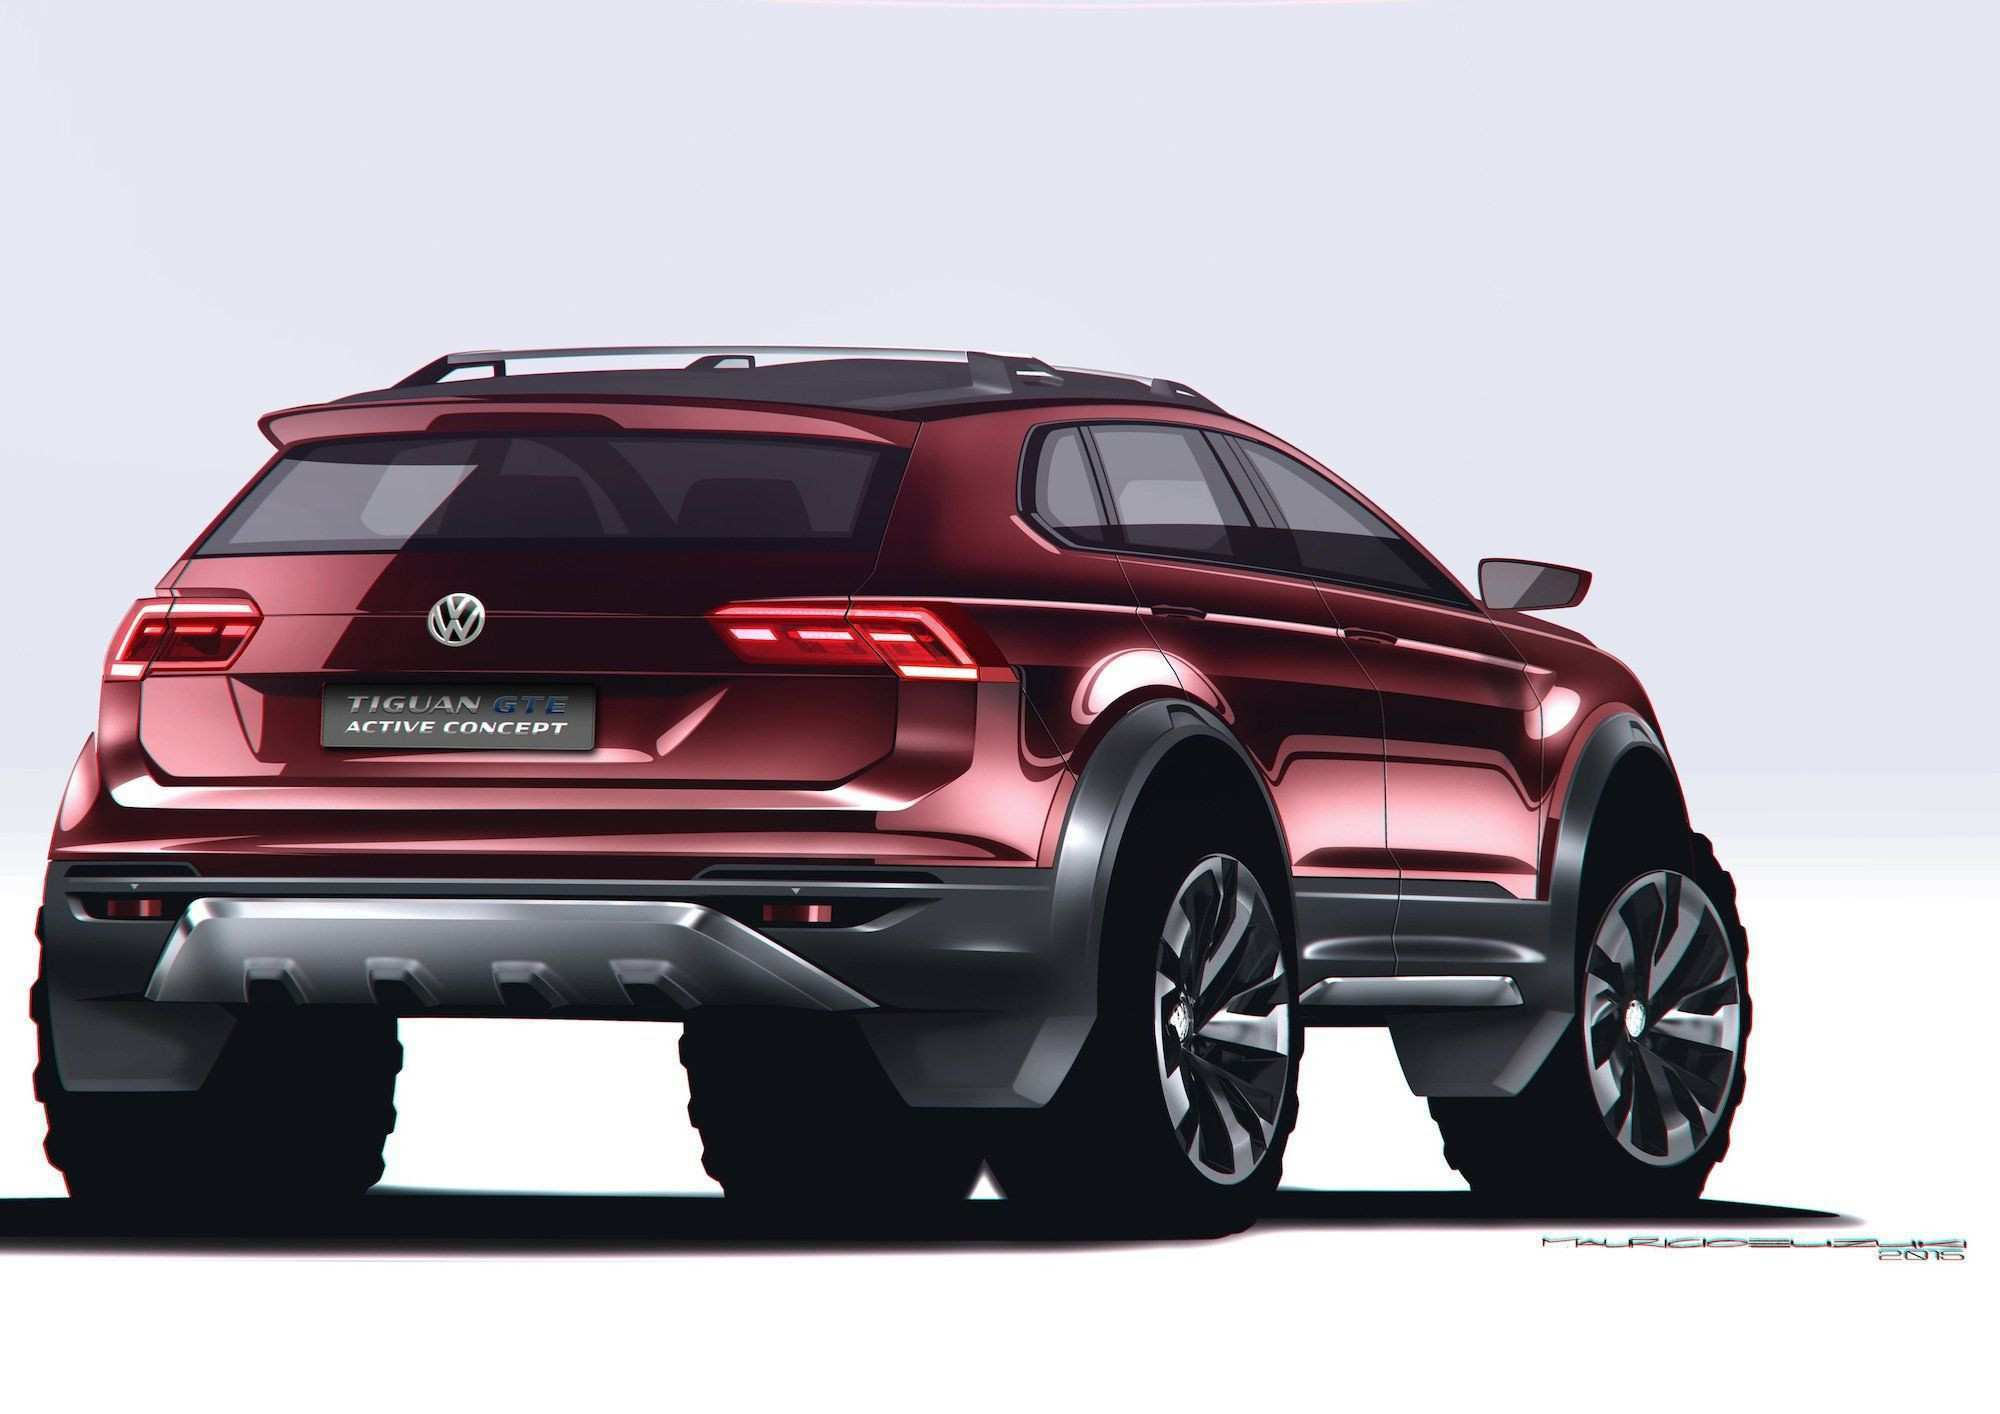 48 Concept of 2019 Volkswagen Beetle Suv Picture for 2019 Volkswagen Beetle Suv